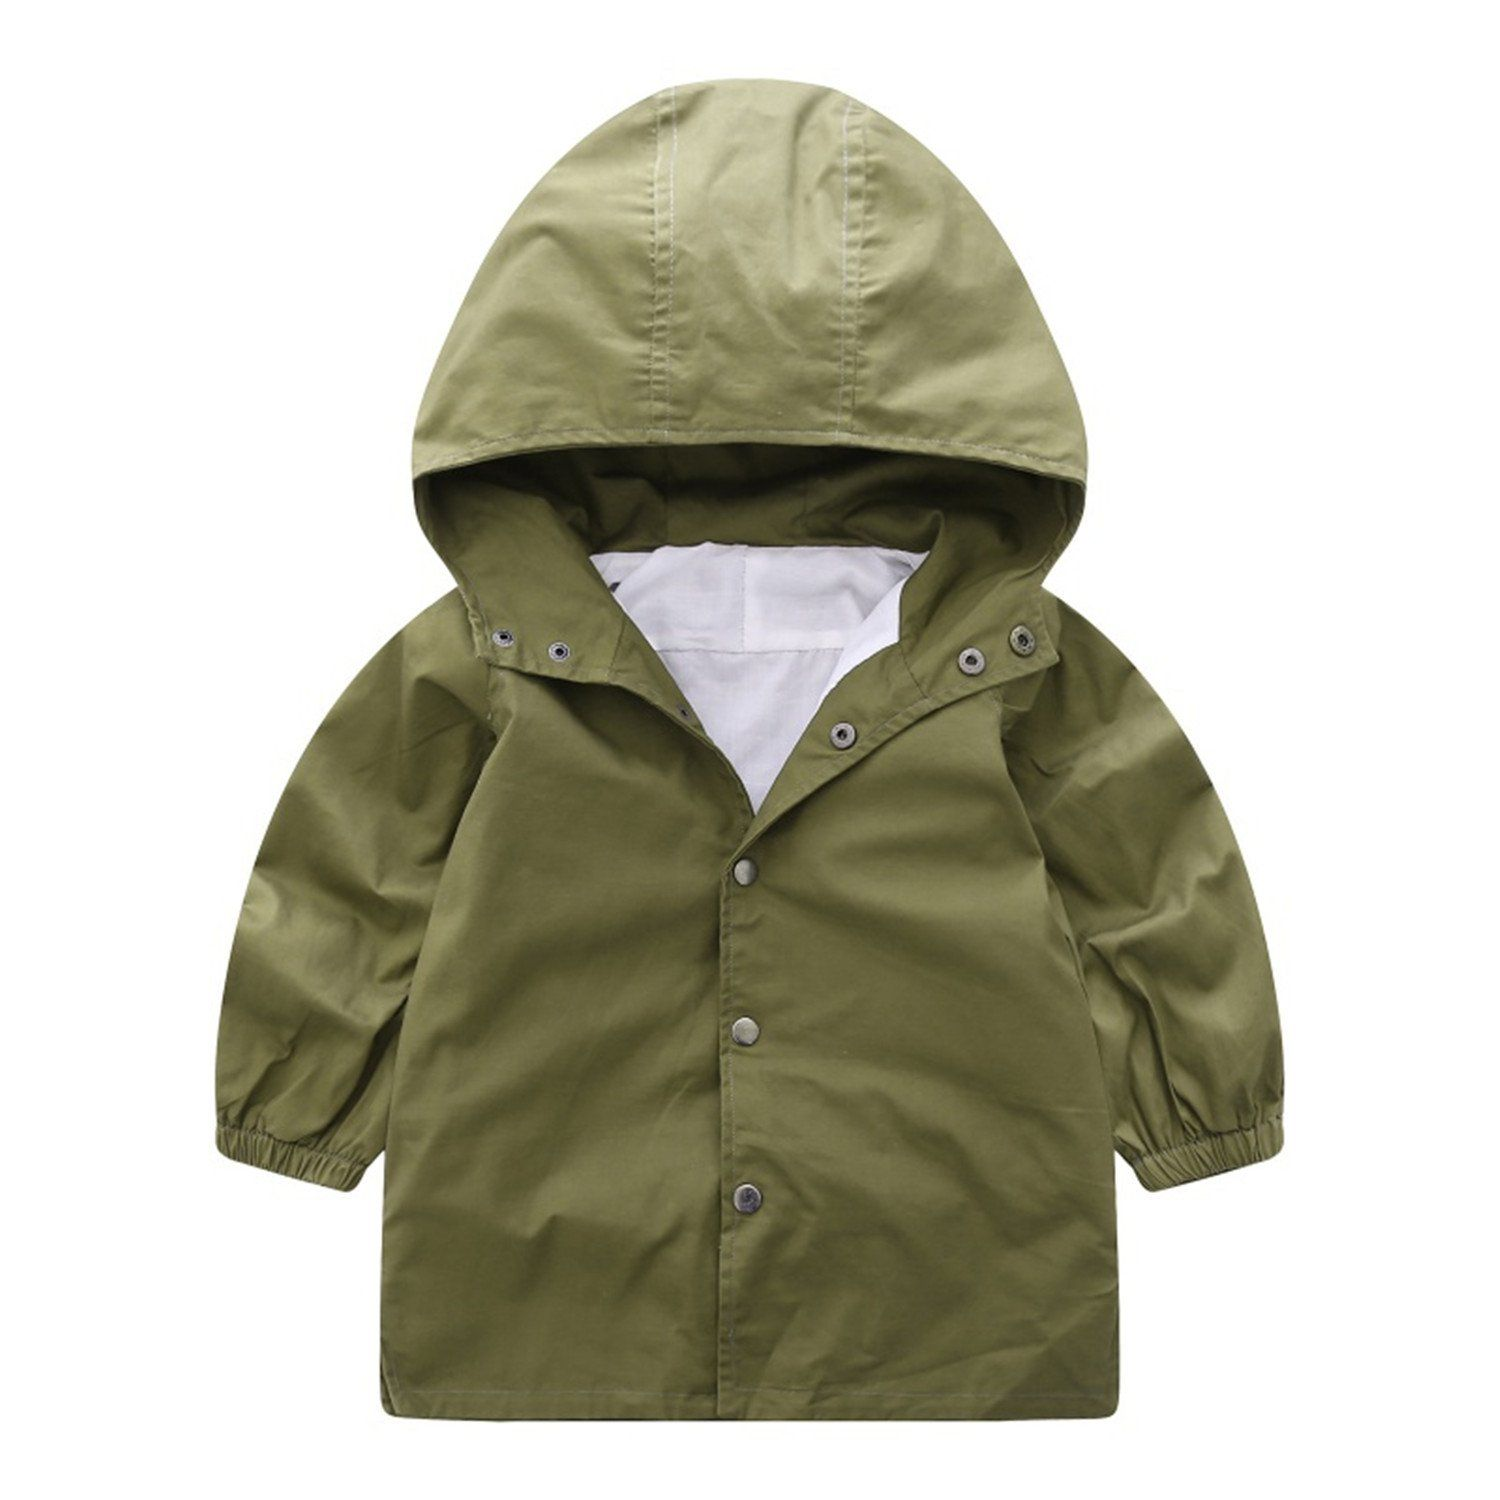 Felds Autumn Boy Casual New Army Green Jacket Windbreaker Coat Children Pure Colors Boy Clothes. Please choose 1-2 bigger size than your US SIZE because it is Asian size. it will keep warm comfortable and looking great. This coat is perfect for the cool chilly days in the winter or Autumn. Hand-wash and Machine washable. Whether for your little boy or nephew,this coat will make a great birthday gift.